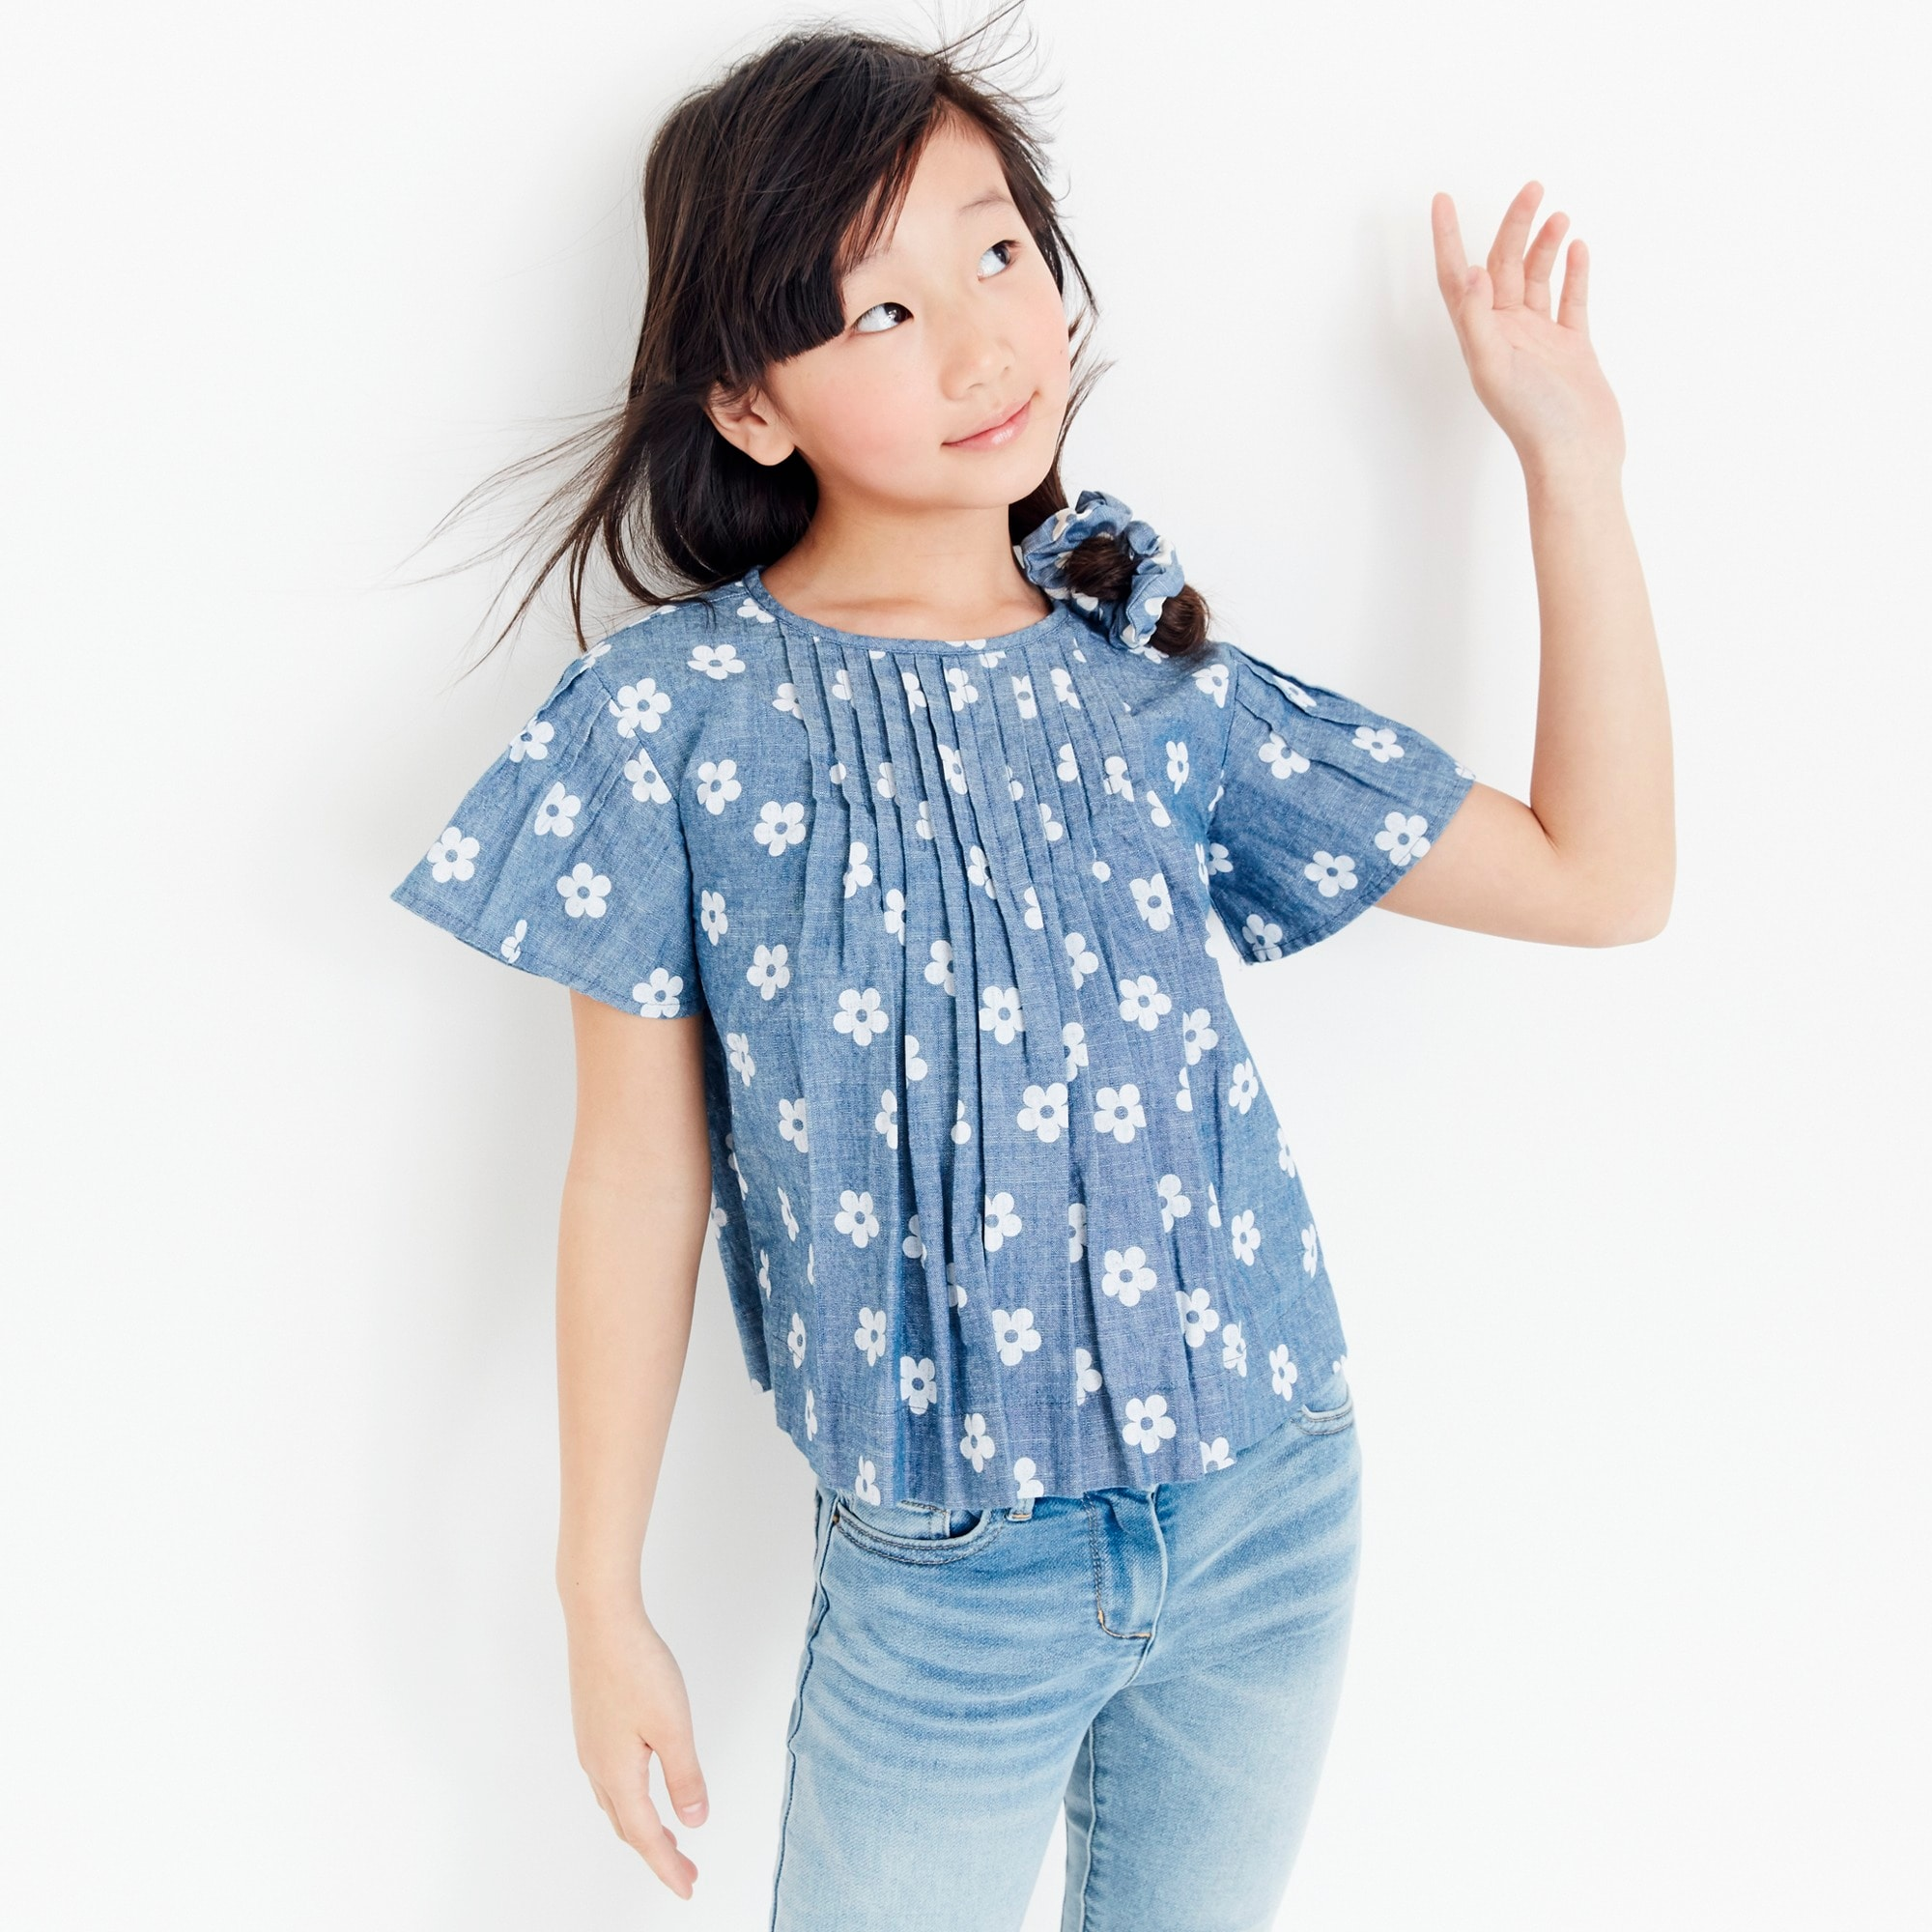 girls Girls' pleated top in daisy-print chambray